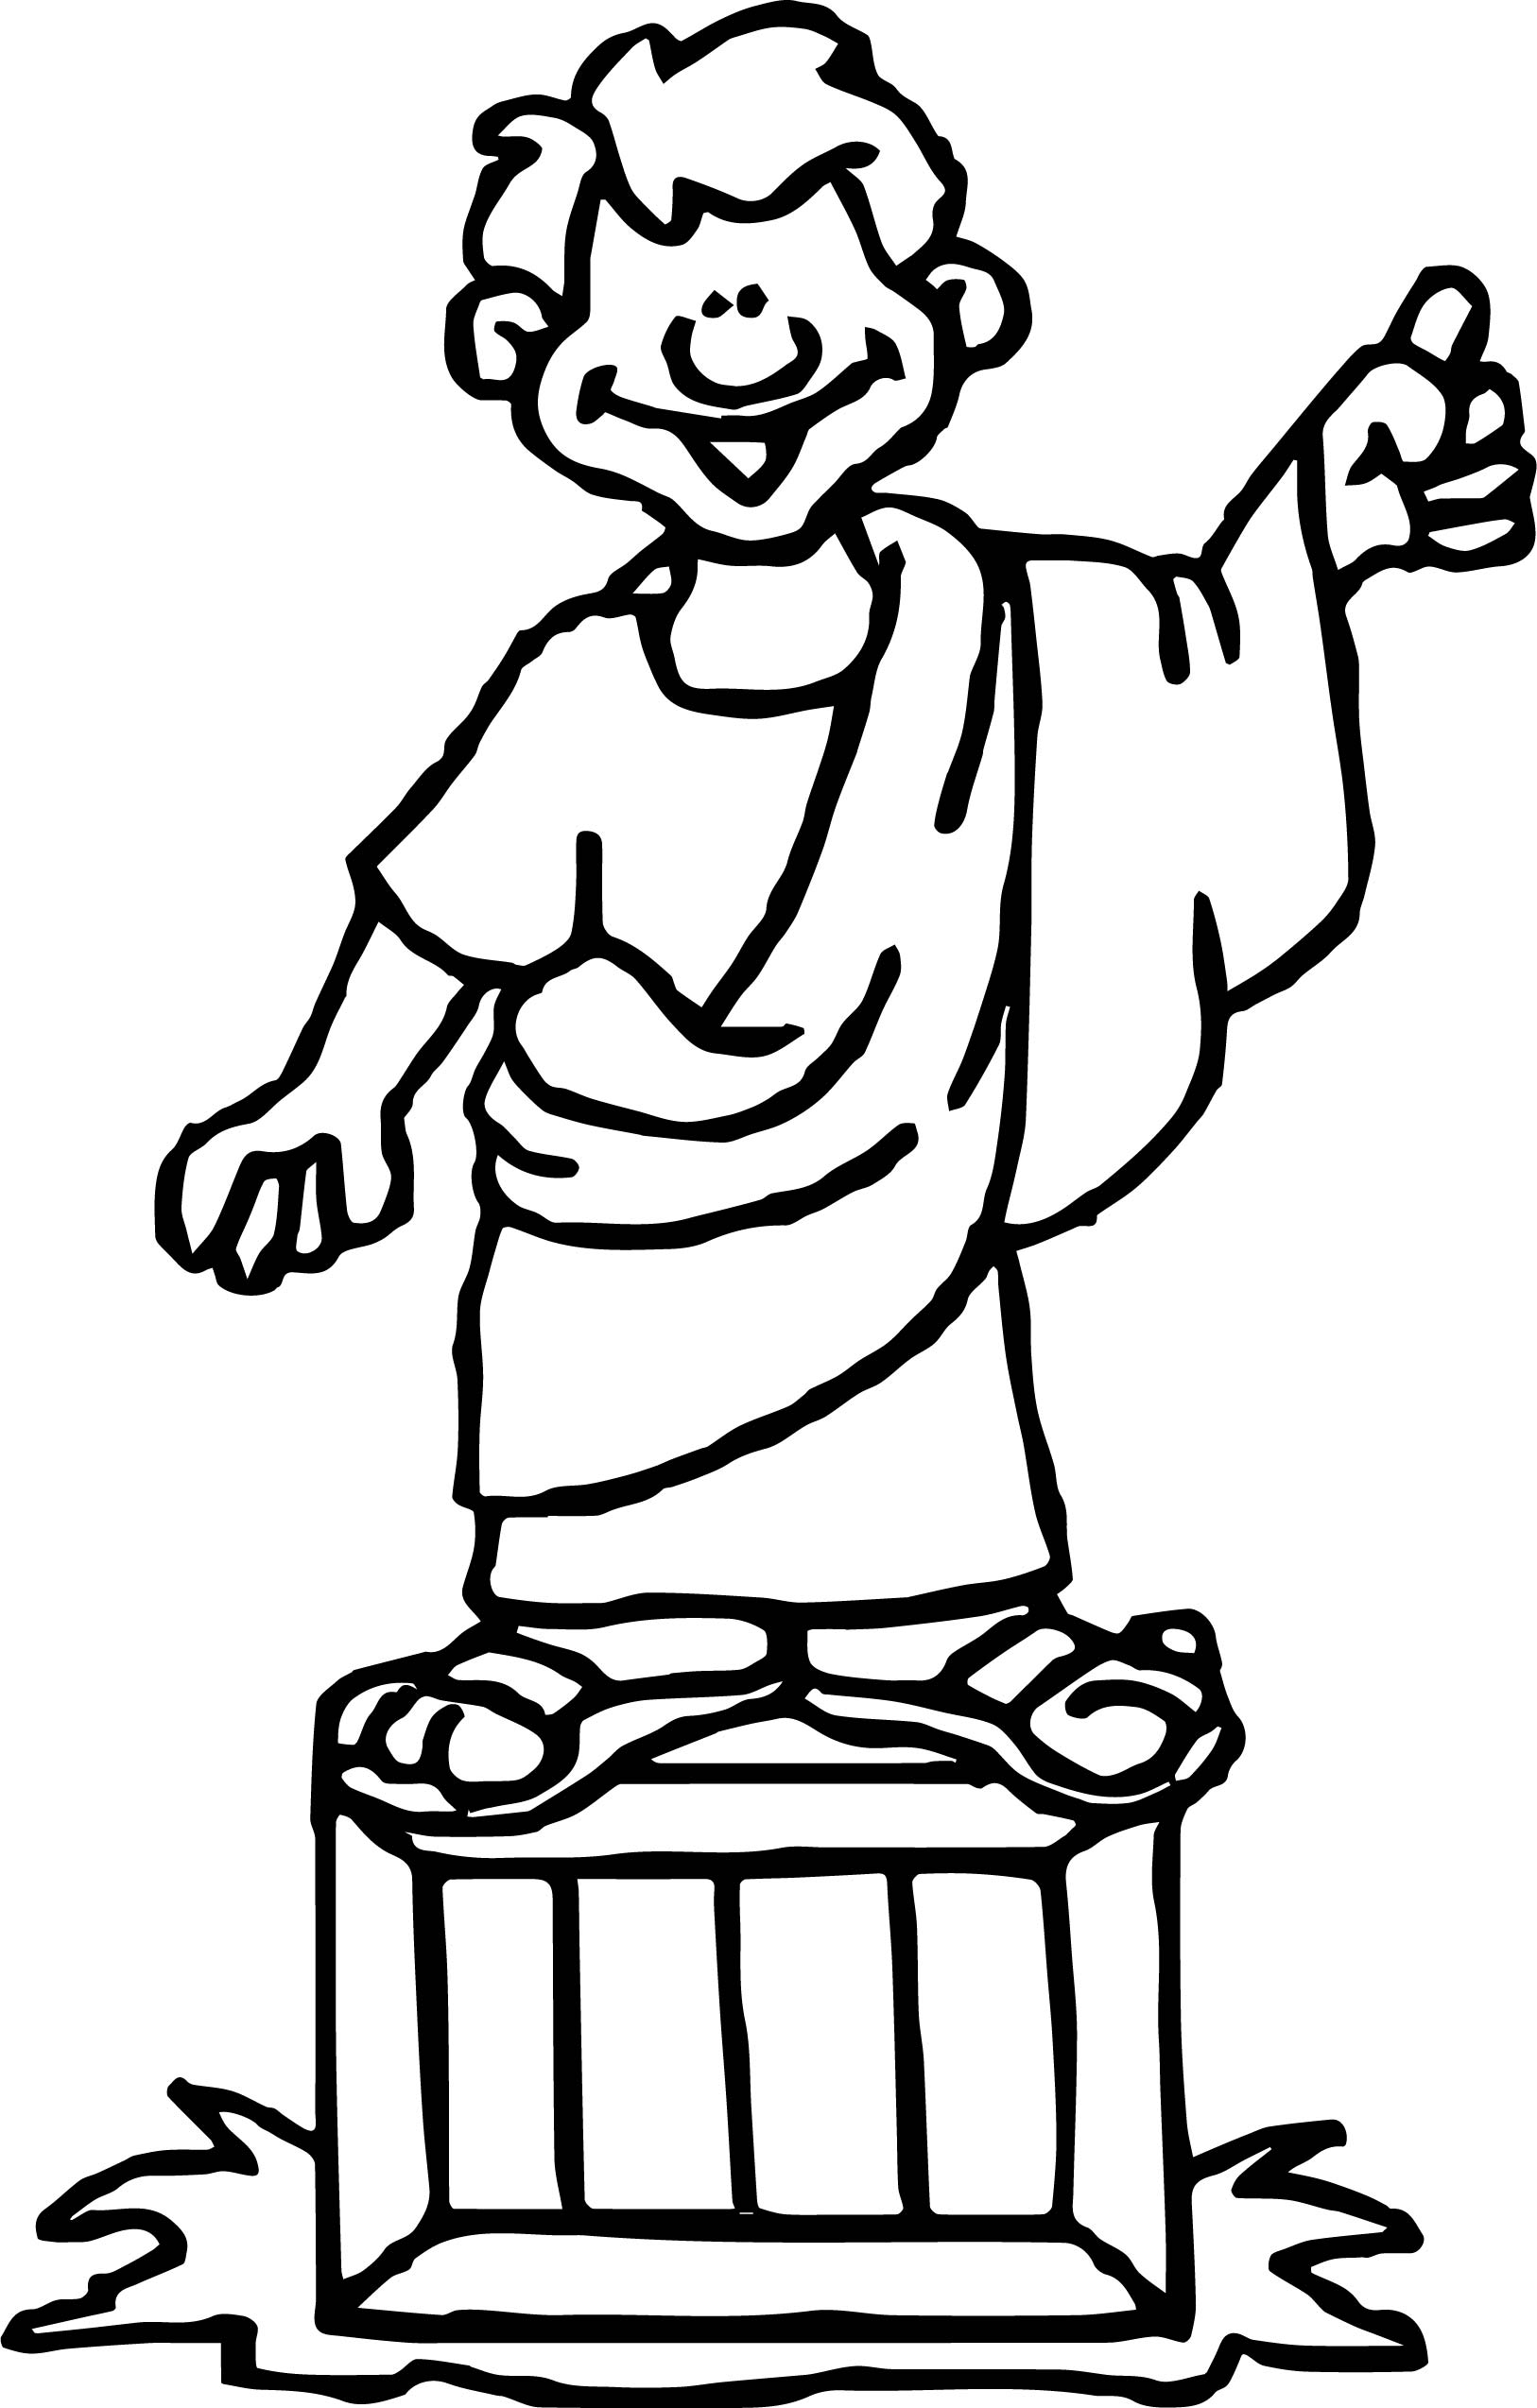 ancient roman coloring pages | Ancient Rome Talk Coloring Page | Wecoloringpage.com